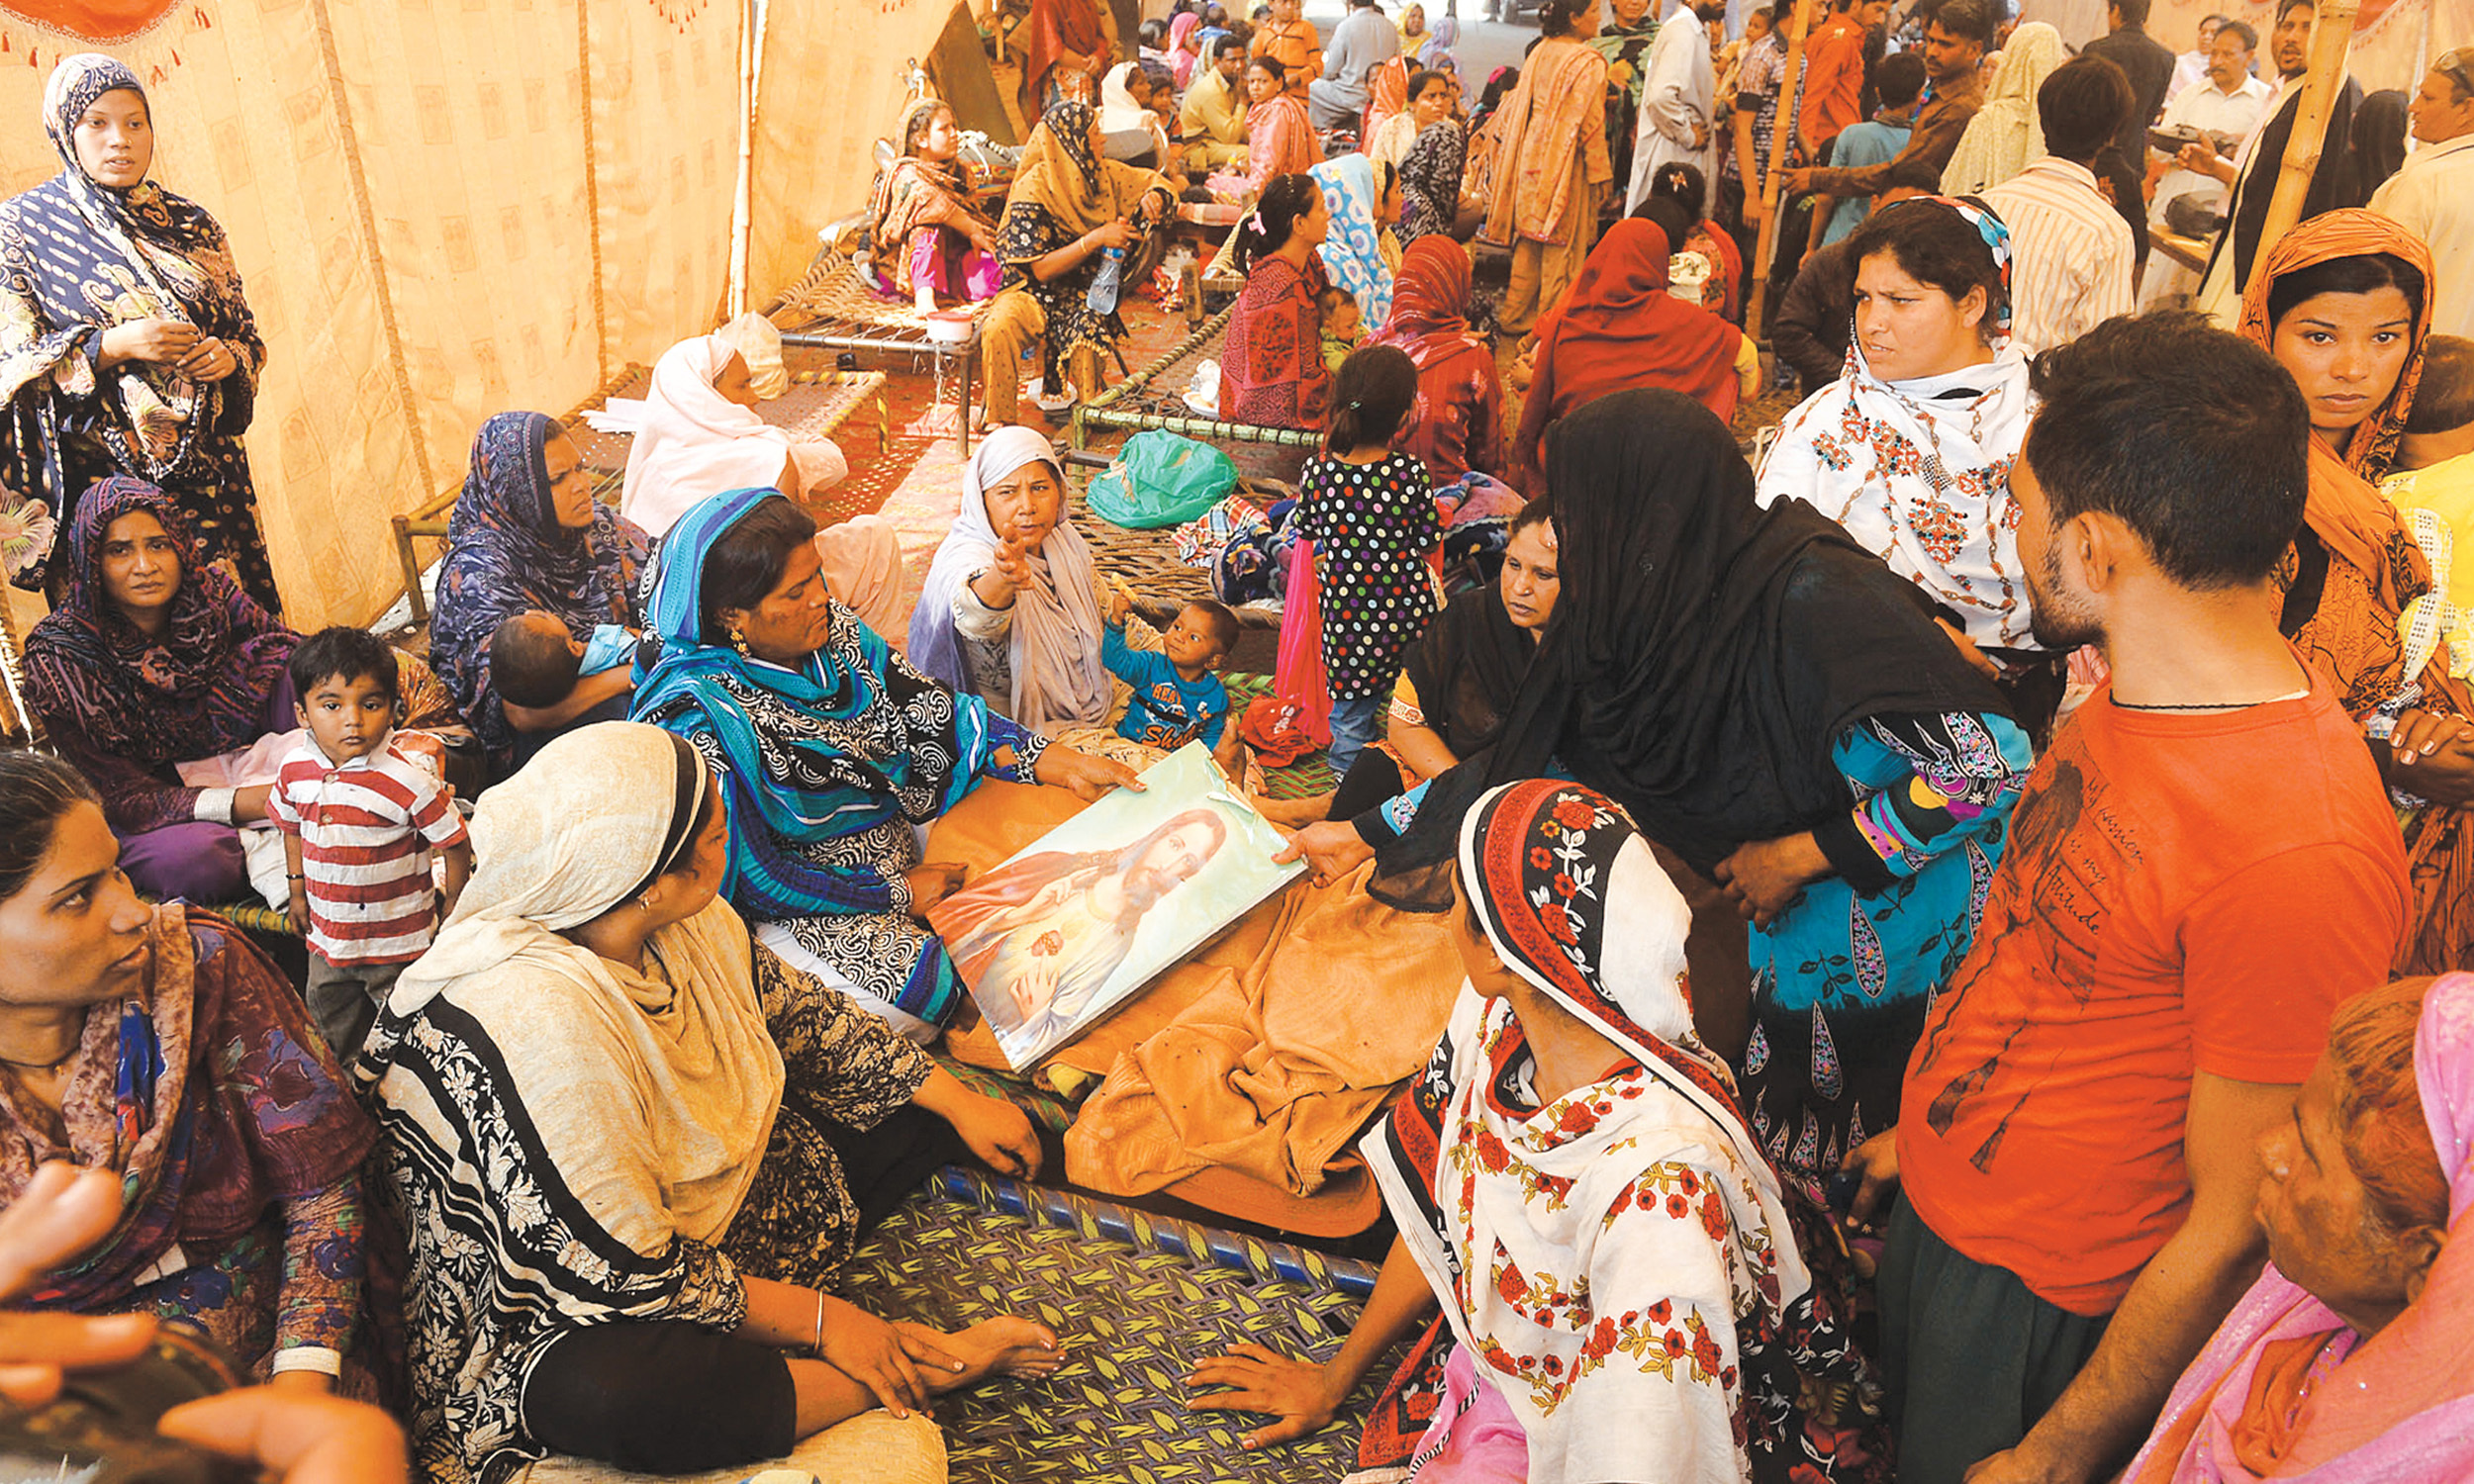 Christian women mourn after the Jospeh Colony attack in Lahore in 2013 | M Arif, White Star